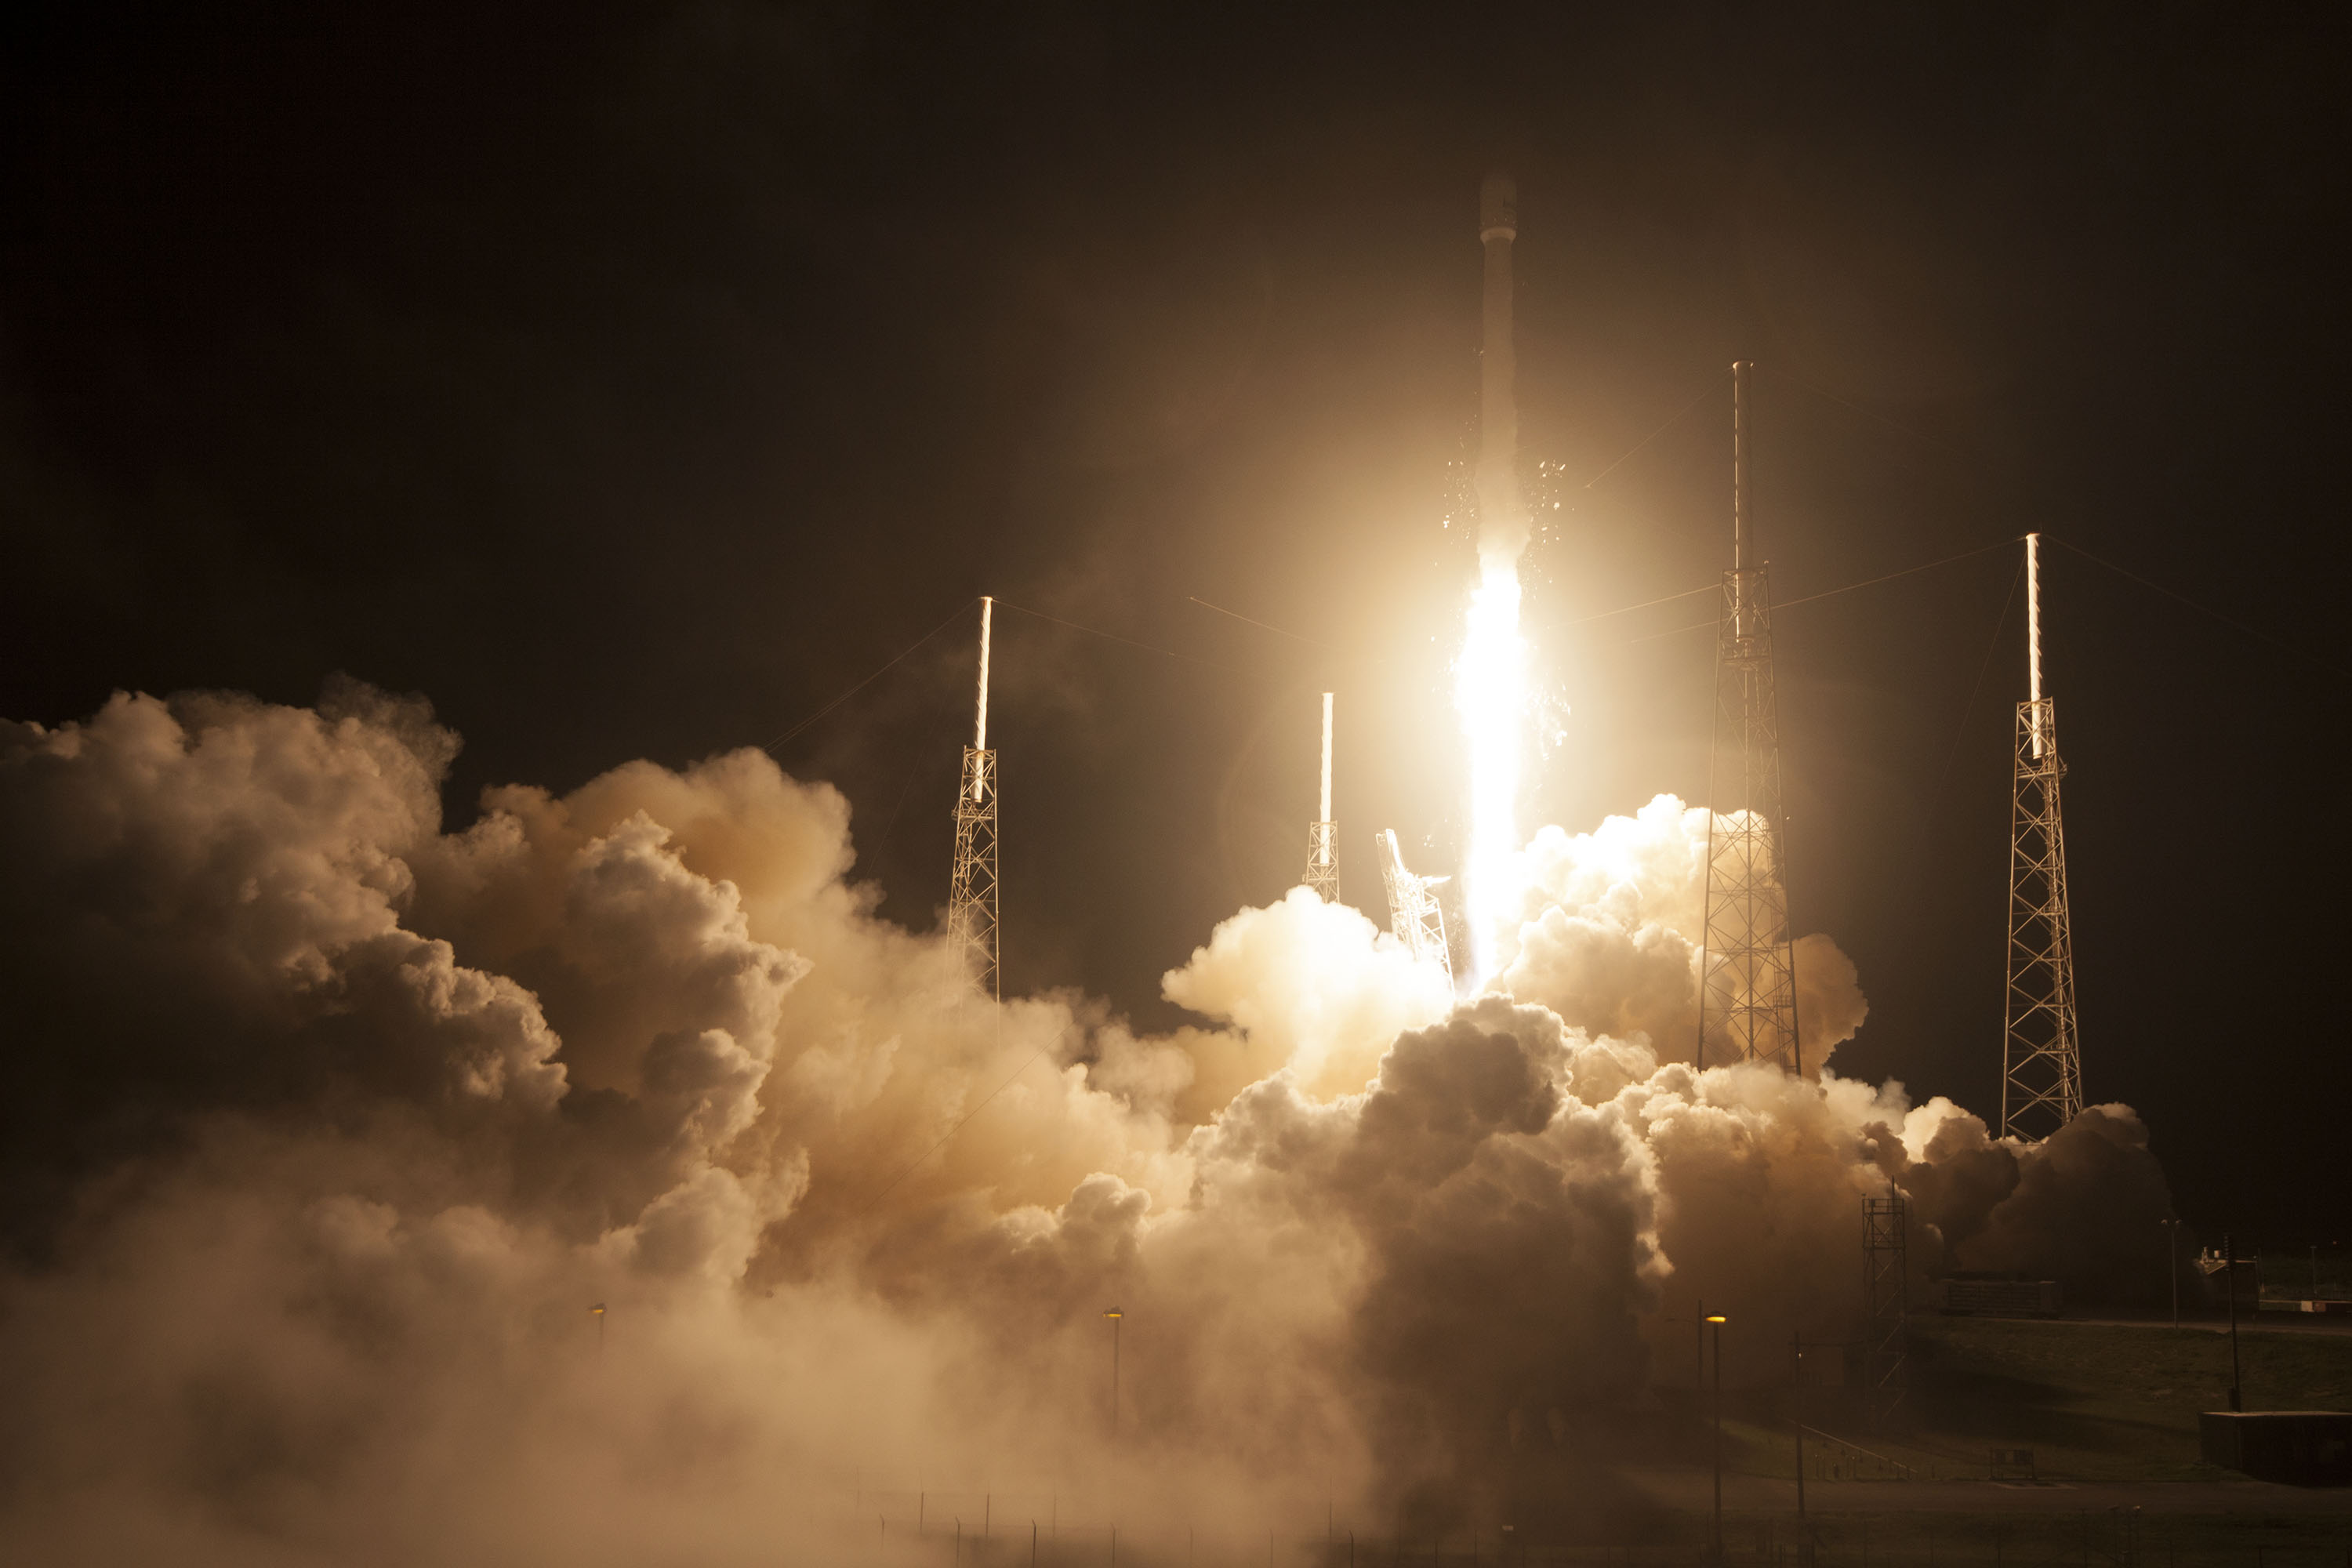 A SpaceX Falcon 9 rocket carrying an Asiasat satellite launches in Cape Canaveral, Fla. on August 7, 2014.